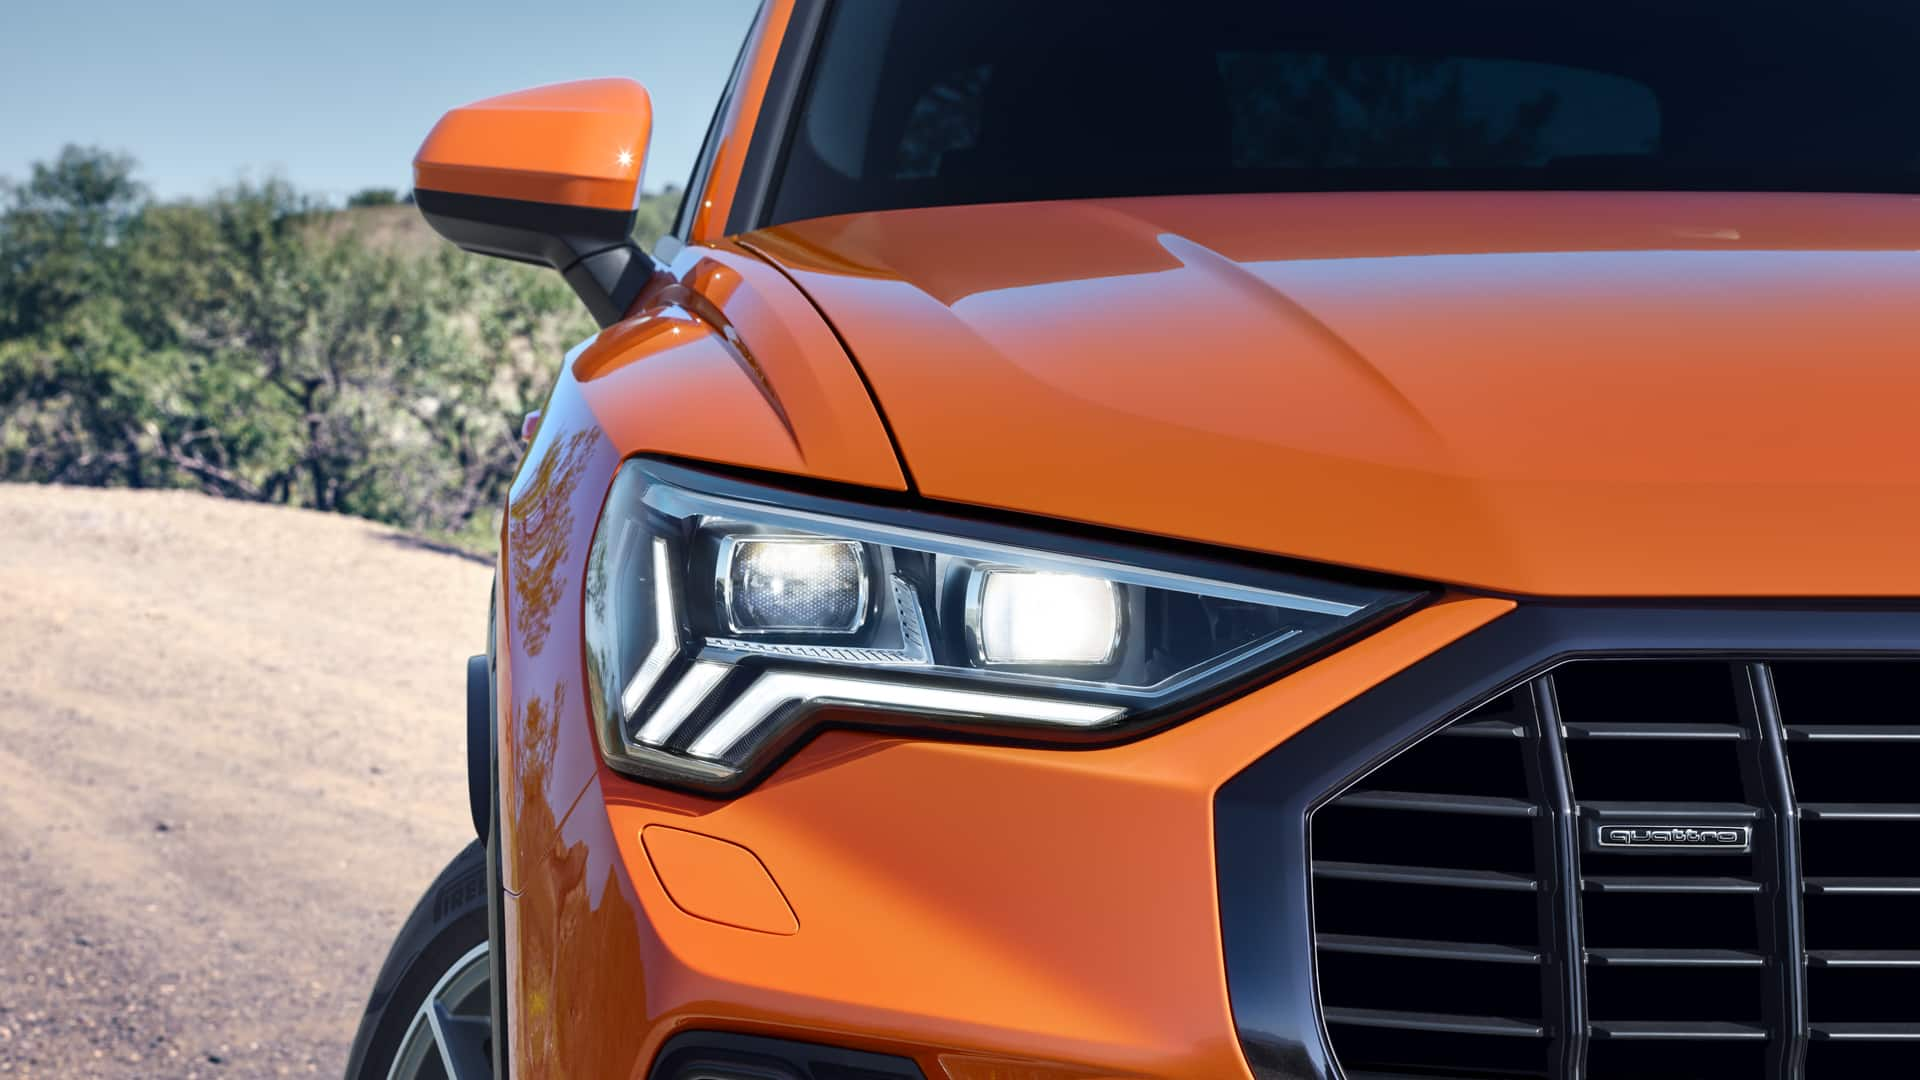 The lighting technology of the new Audi Q3